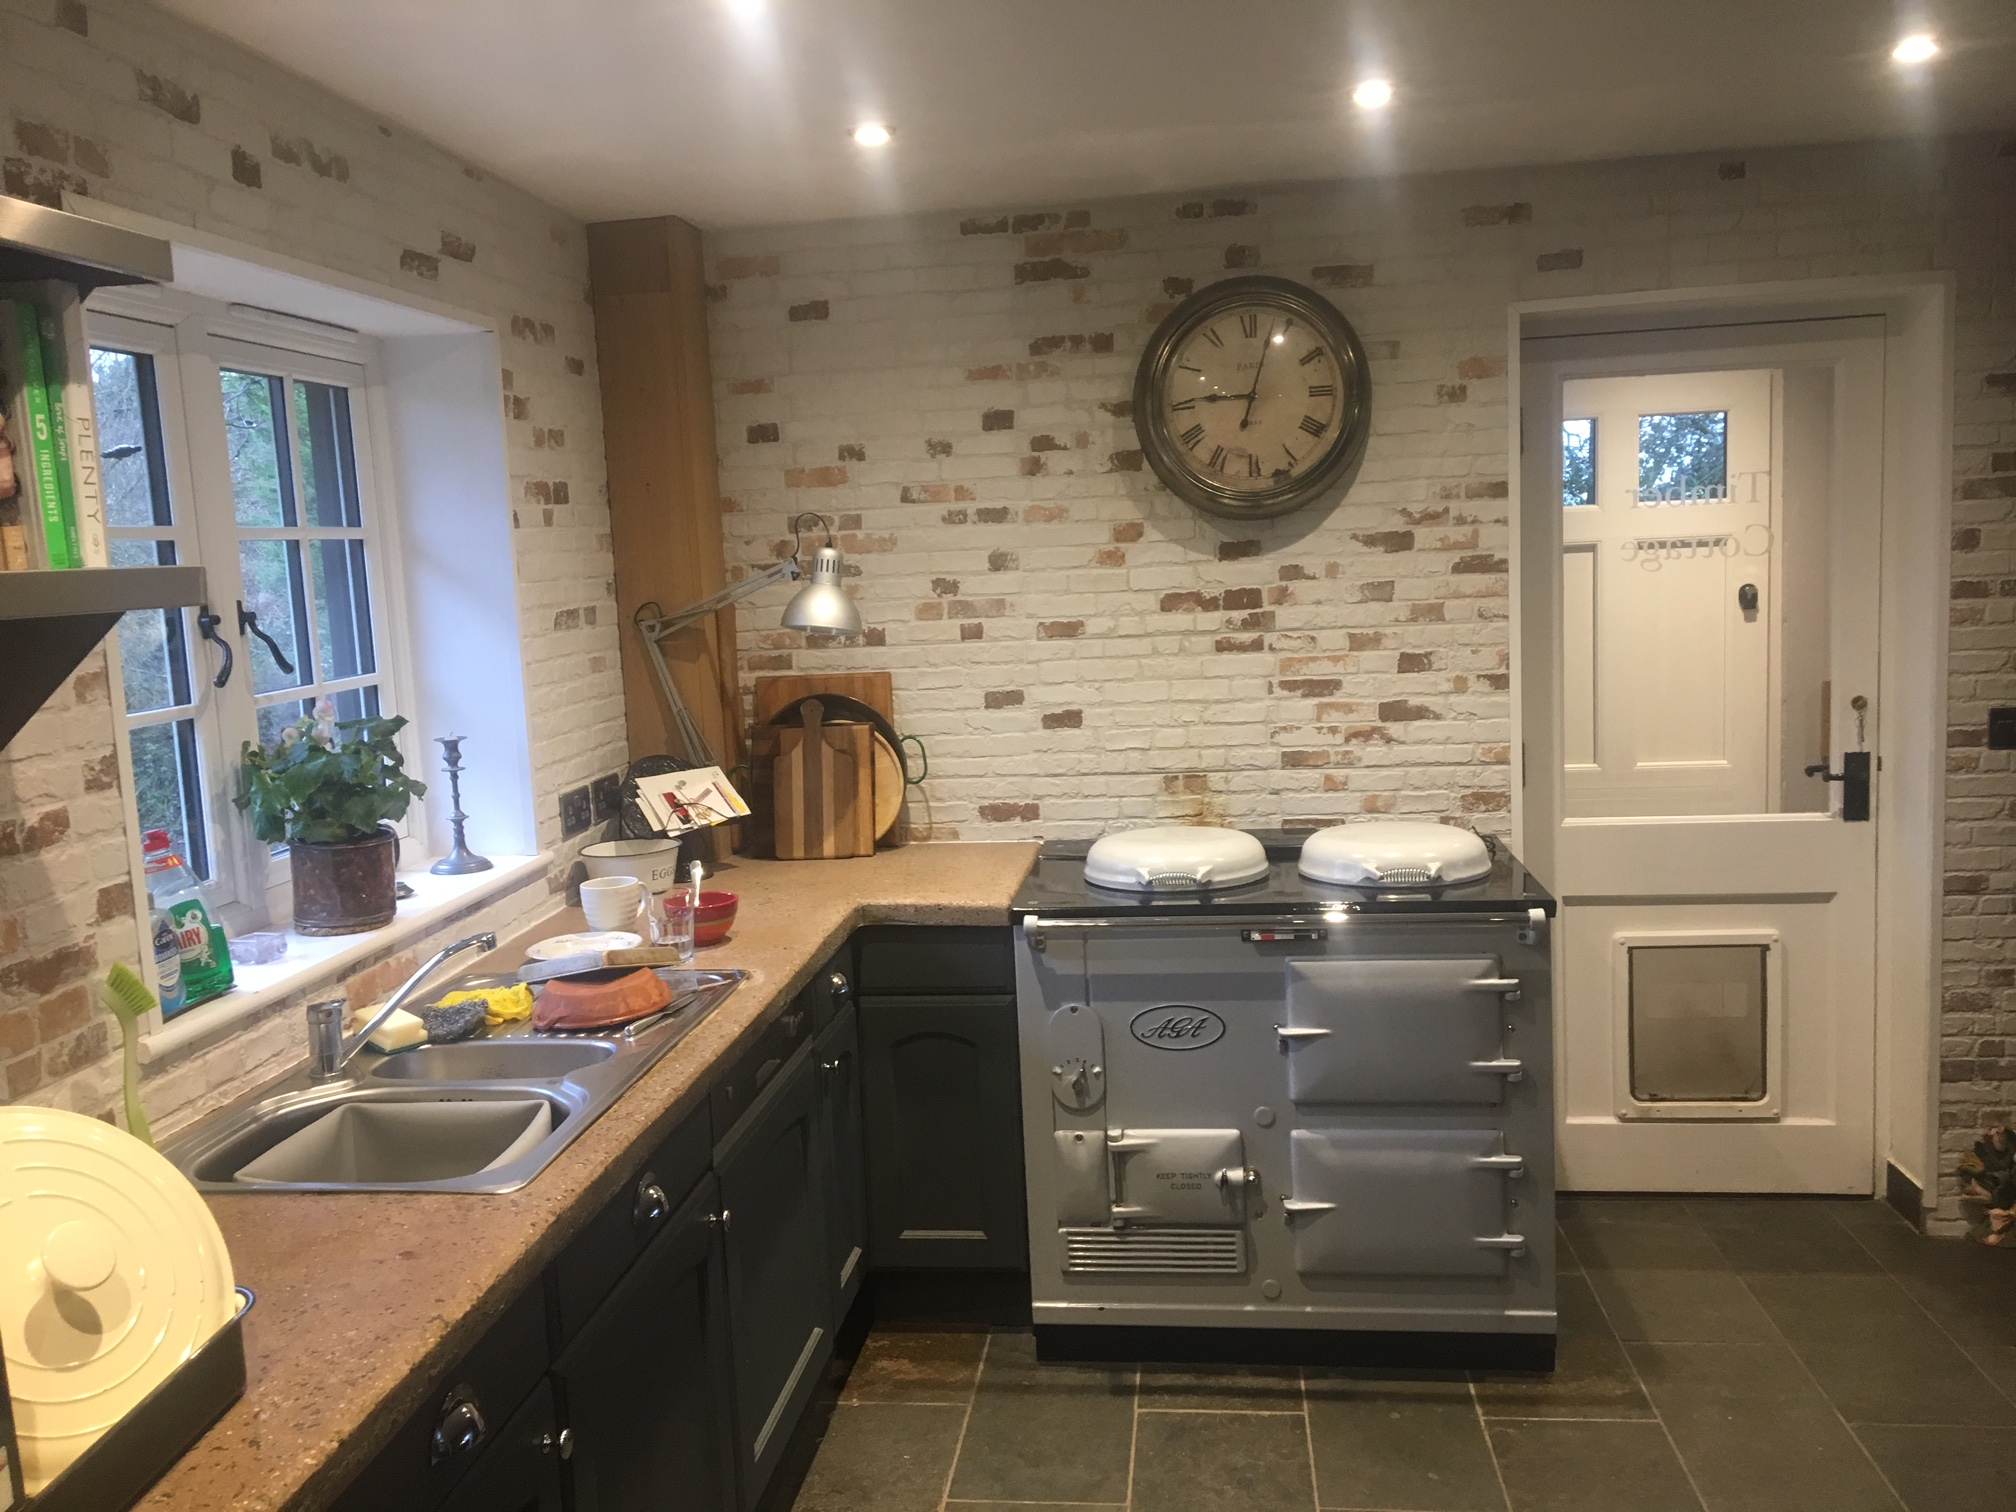 2 Oven Aga Standard<br>Re-Enamelled in Light Grey<br>Converted to Electric <br><br>Installed in West Sussex